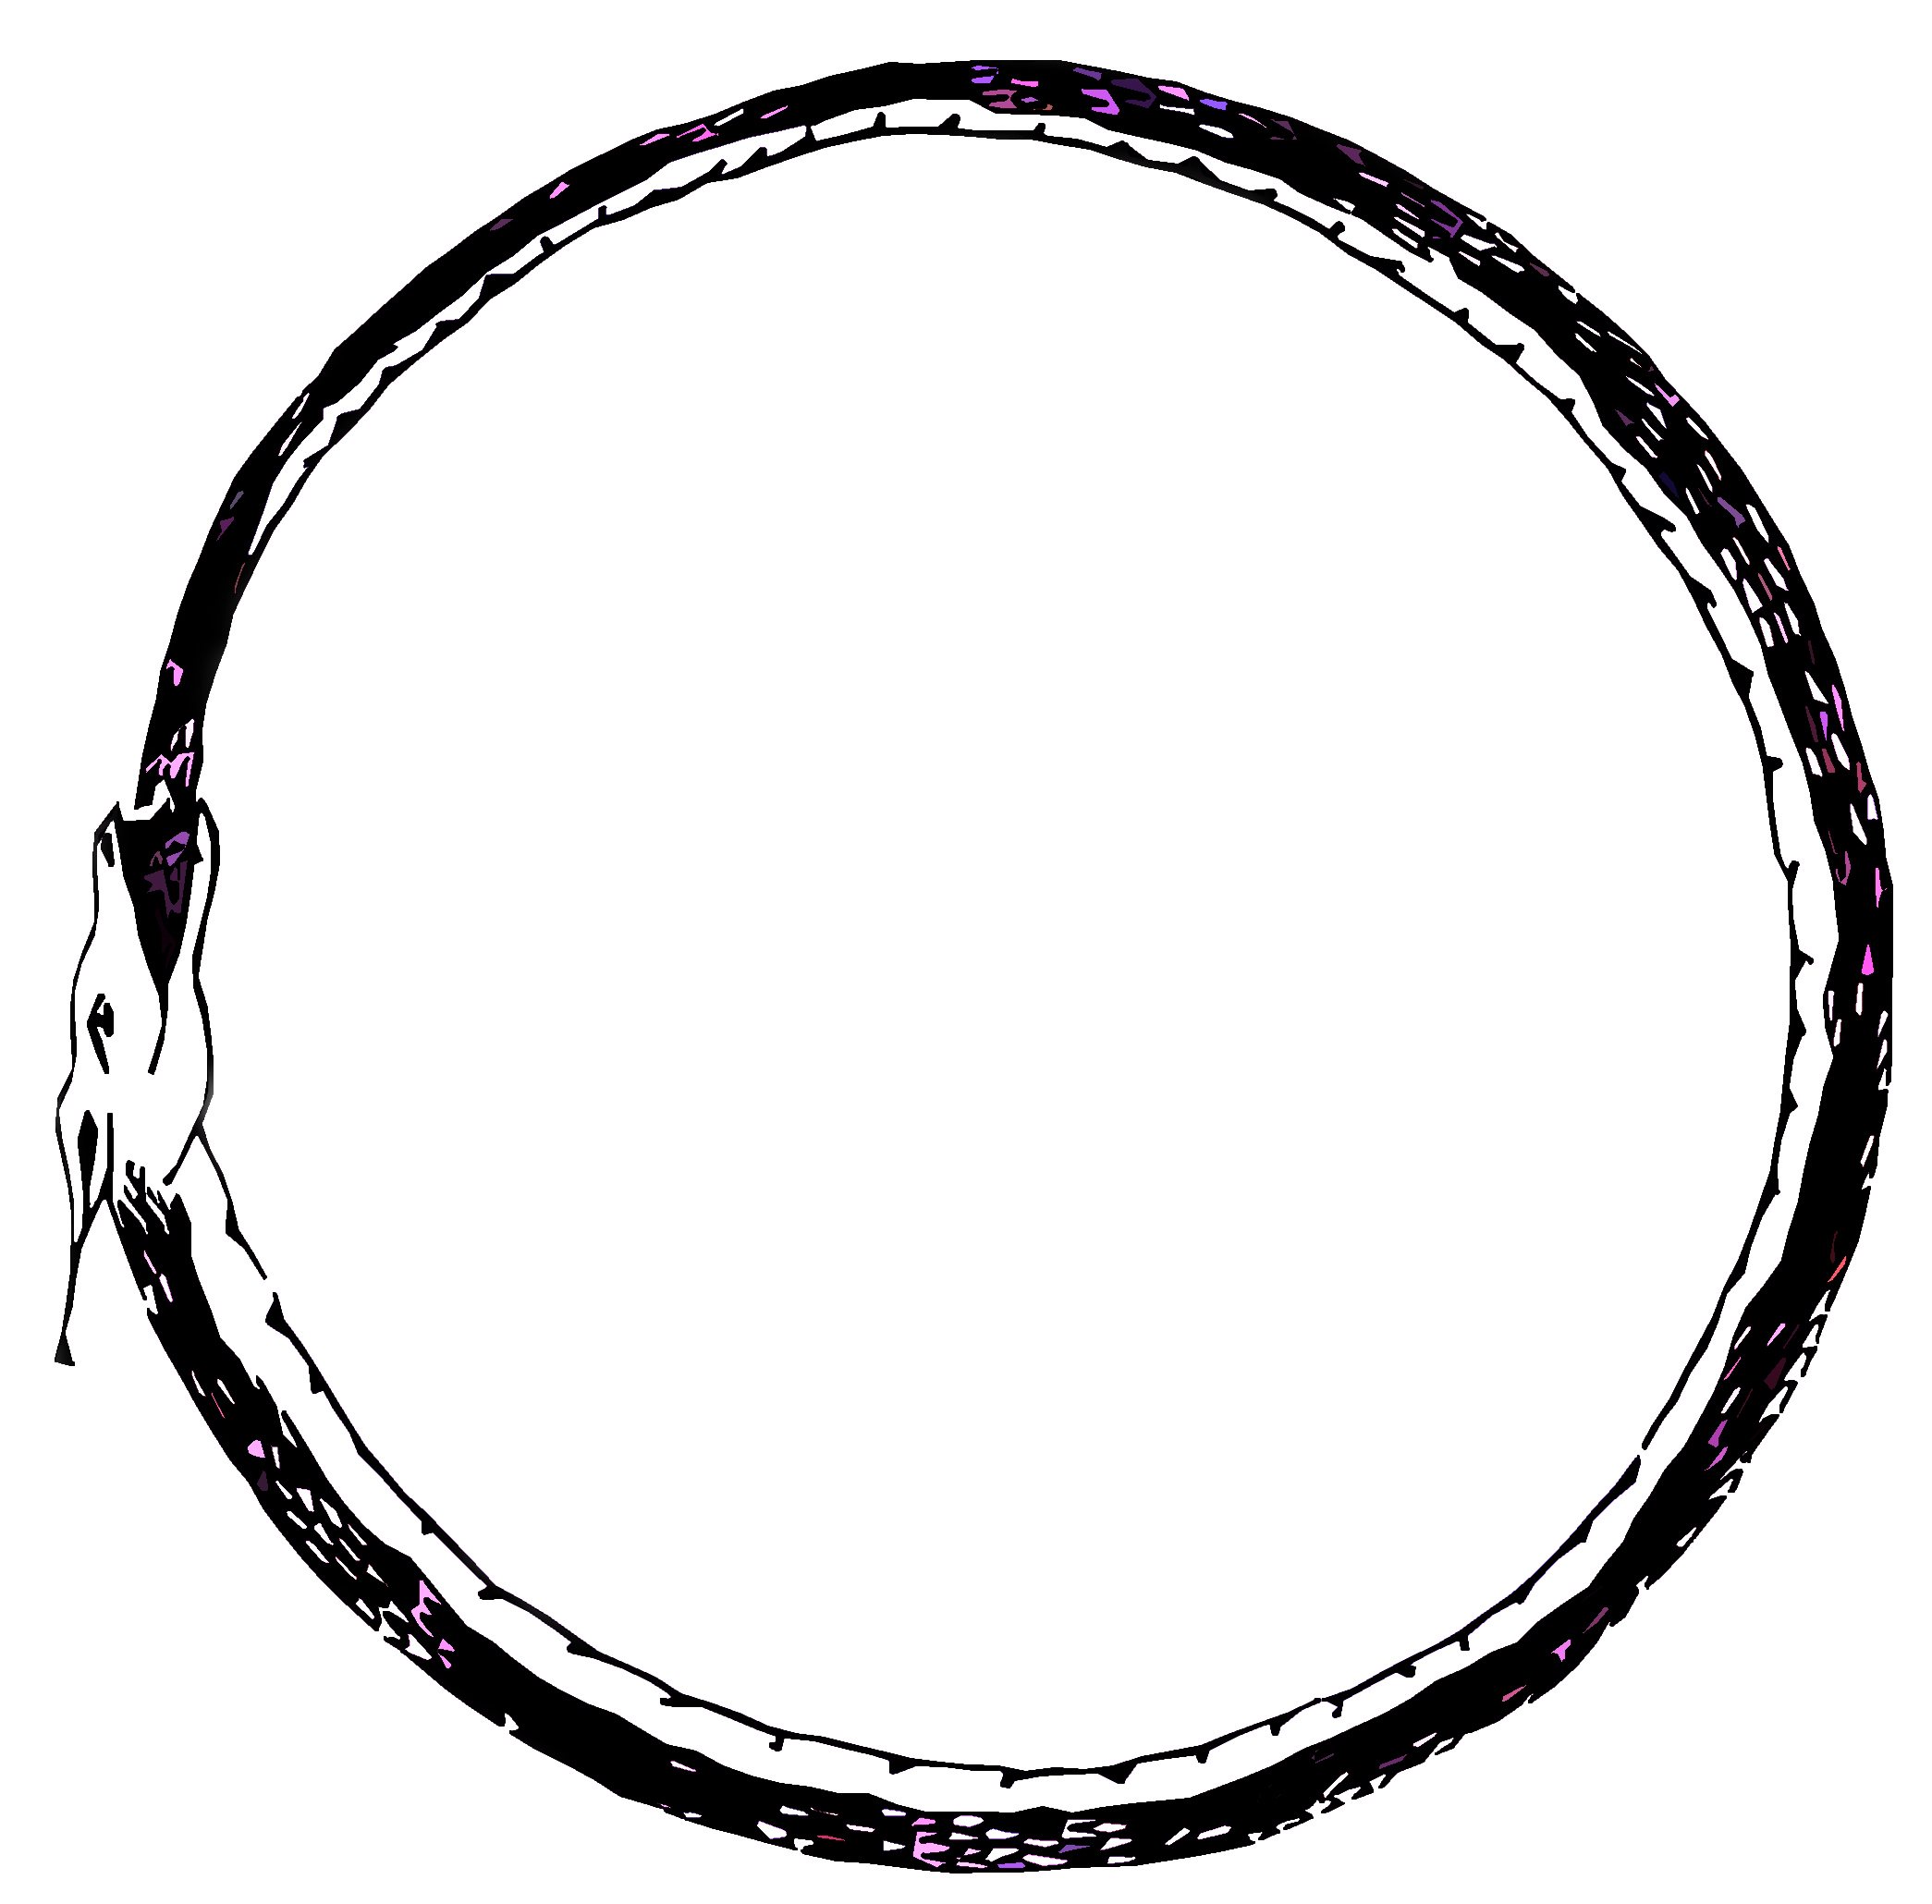 Ouroboros clipart #2, Download drawings